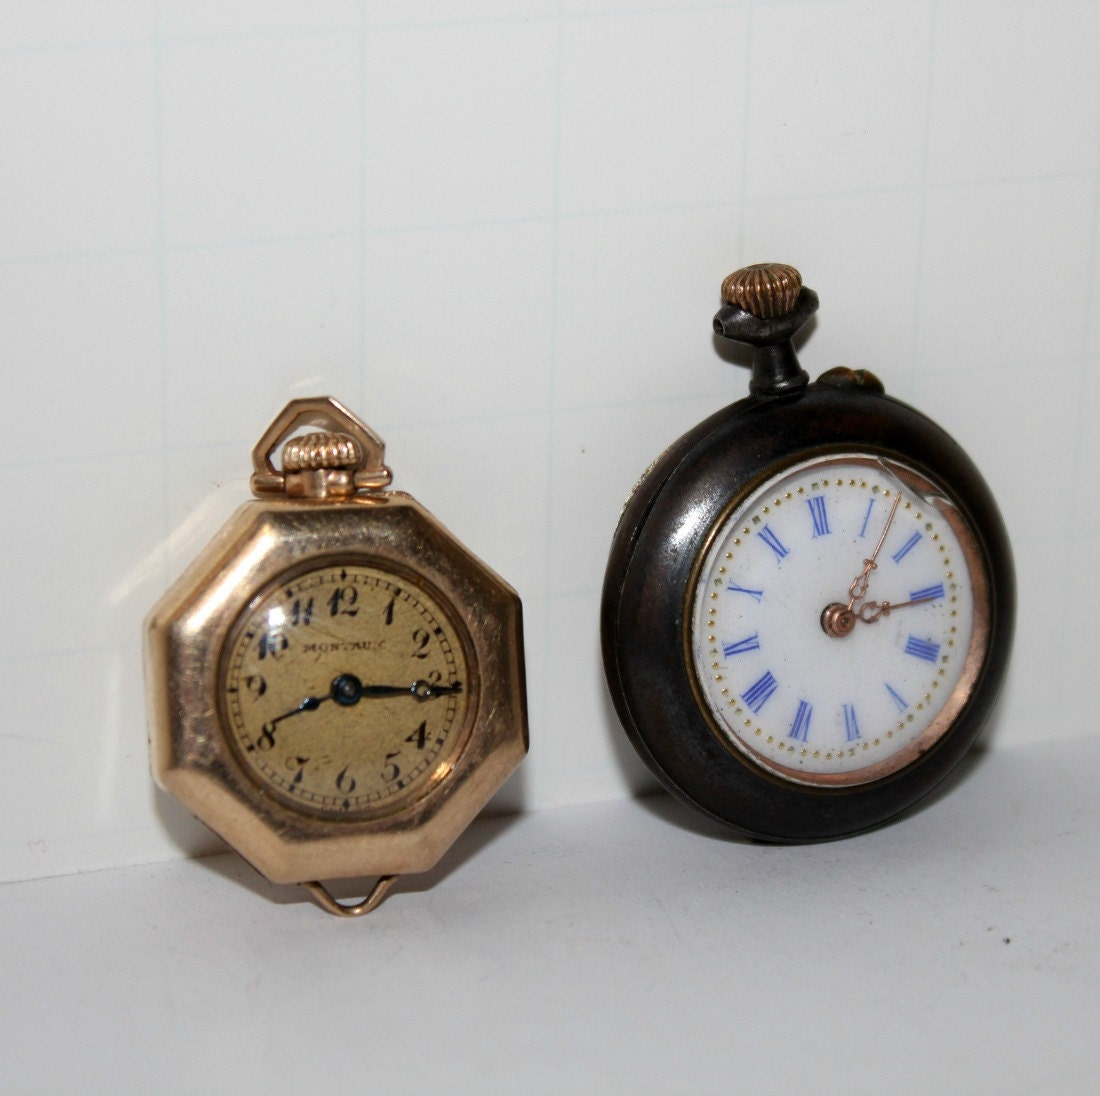 items similar to 2 antique s pocket watches